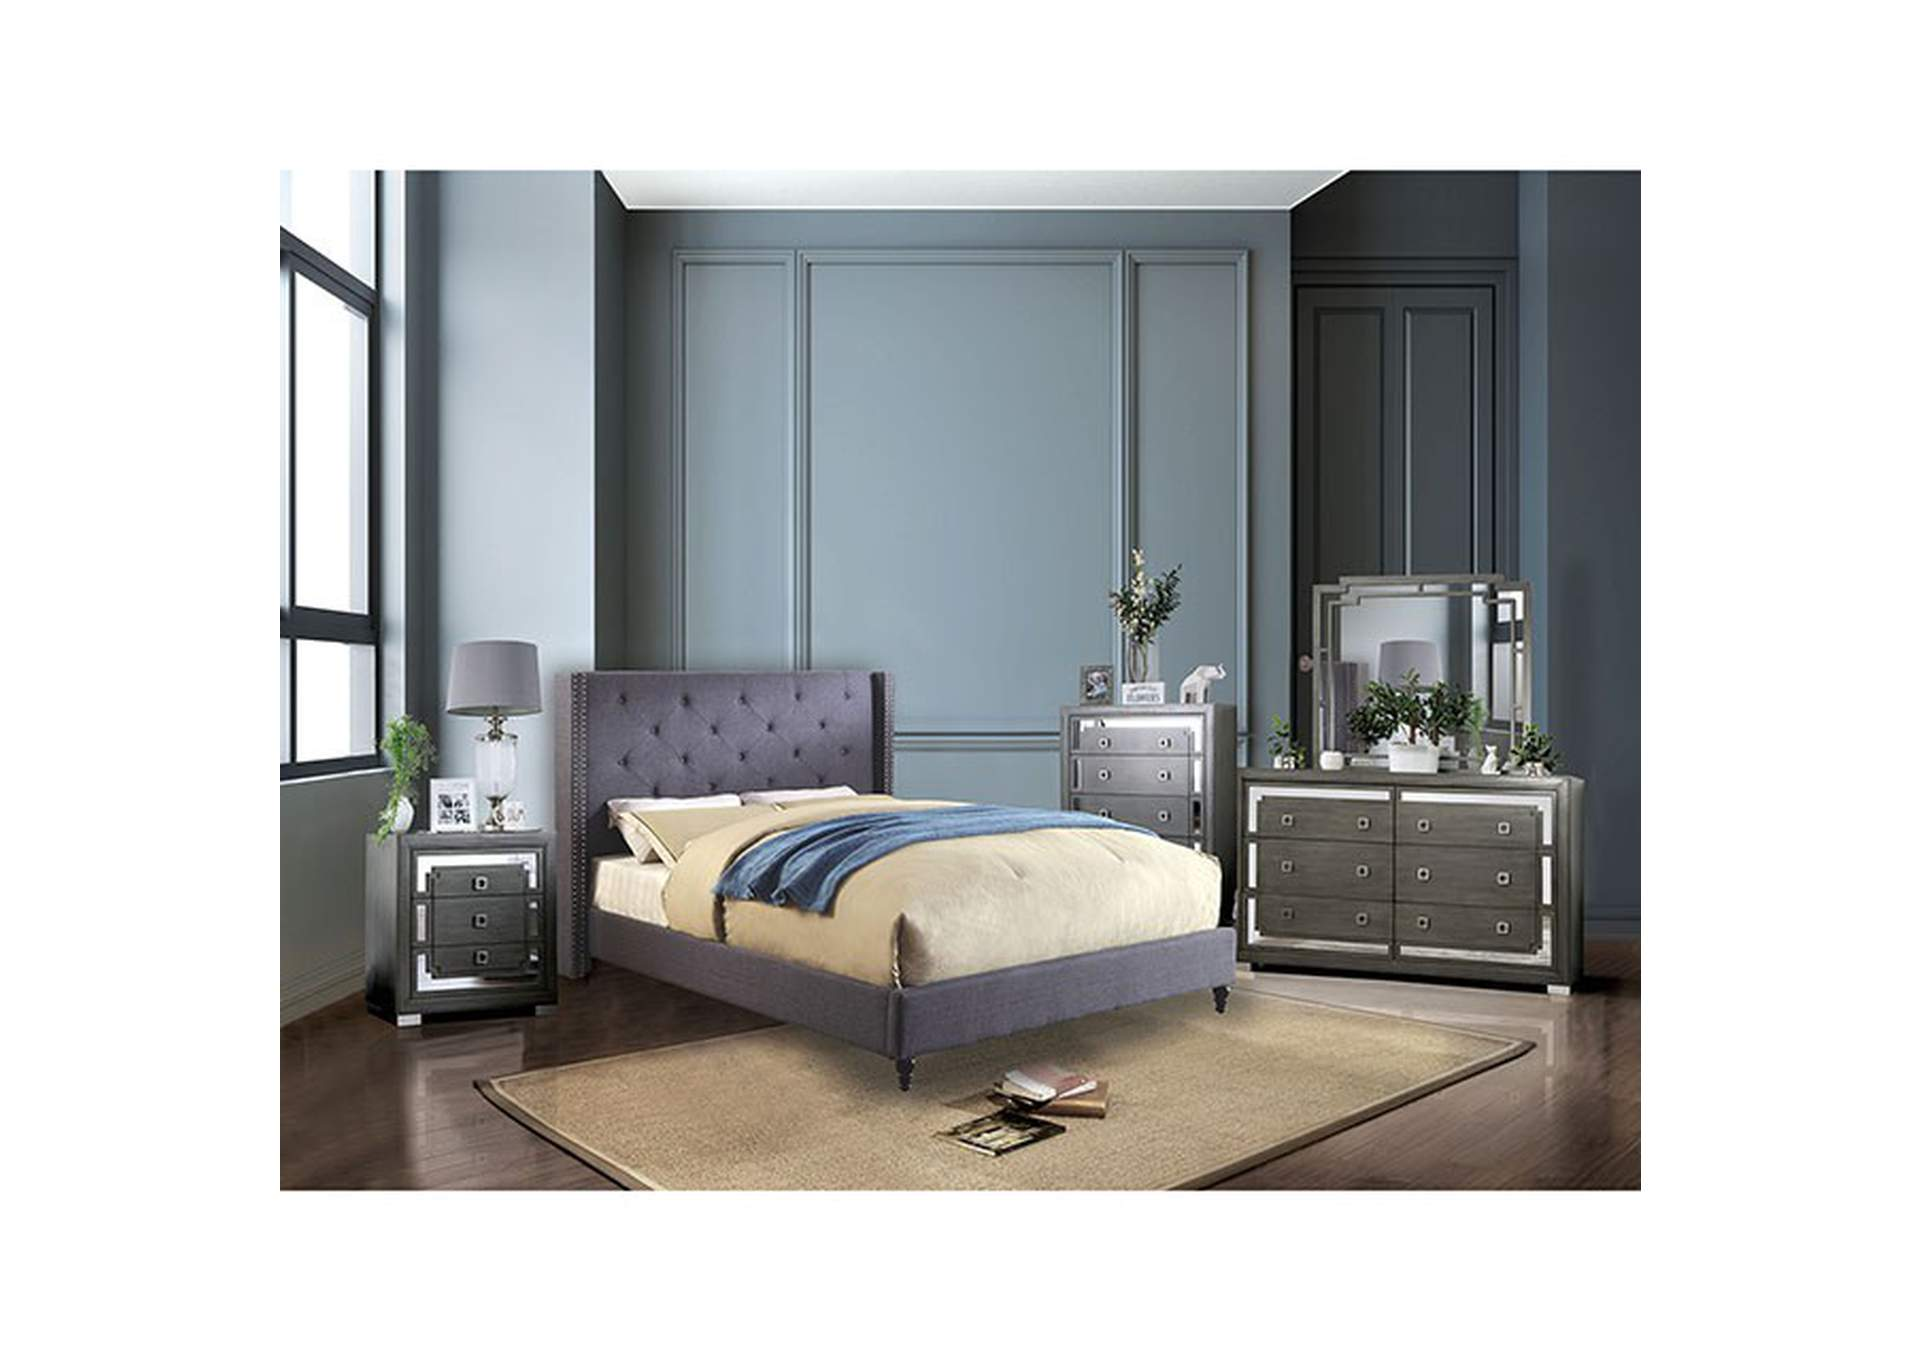 Anabelle Blue Upholstered Queen Platform Bed,Furniture of America